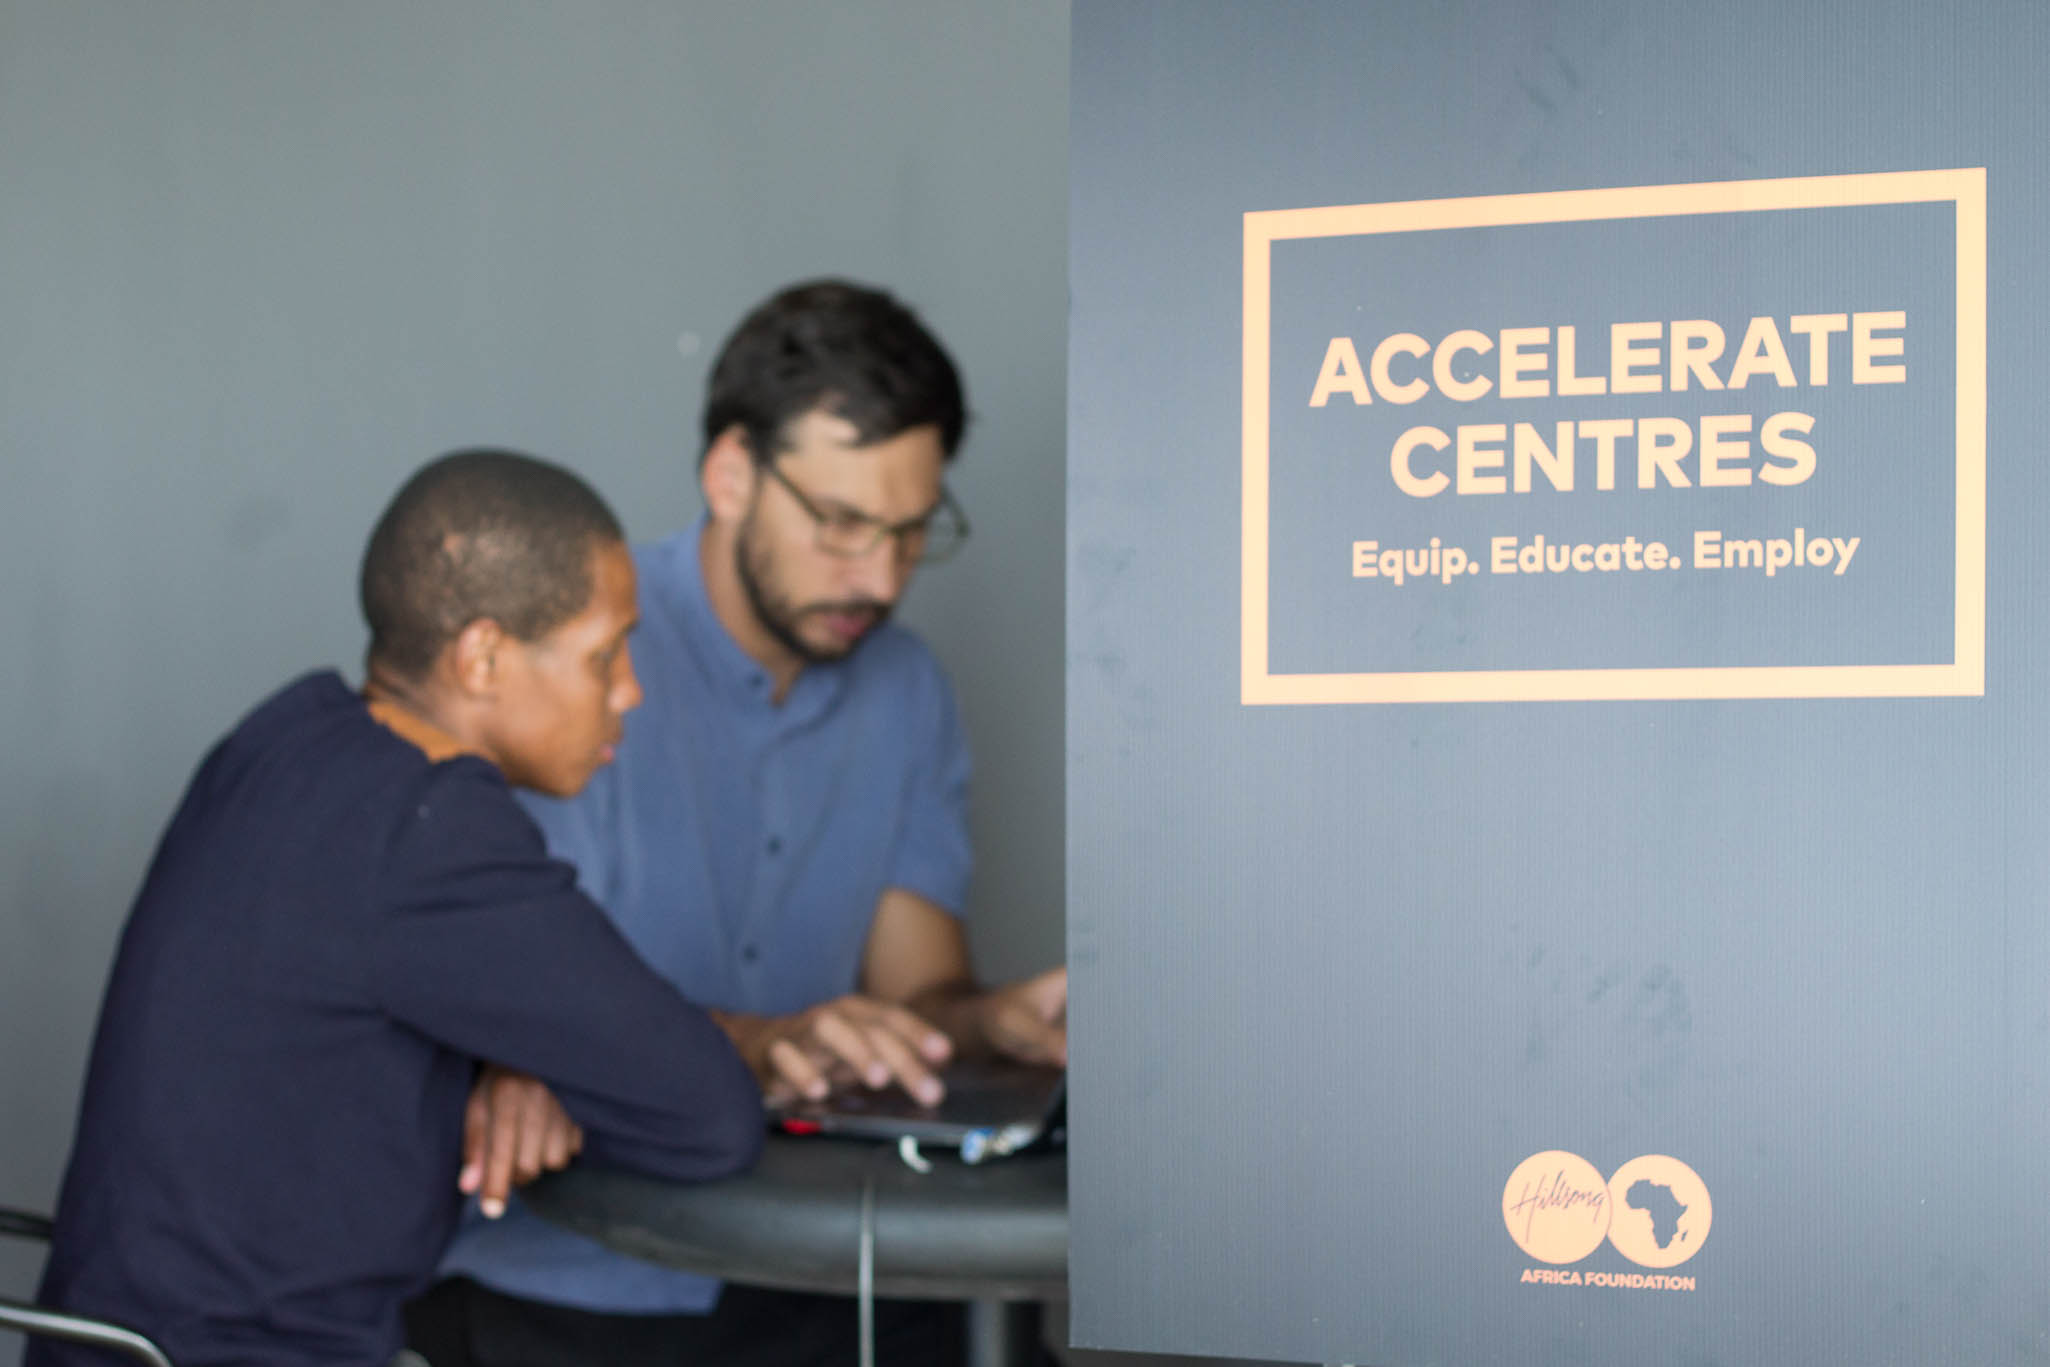 Accelerate Centre Launched in JHB